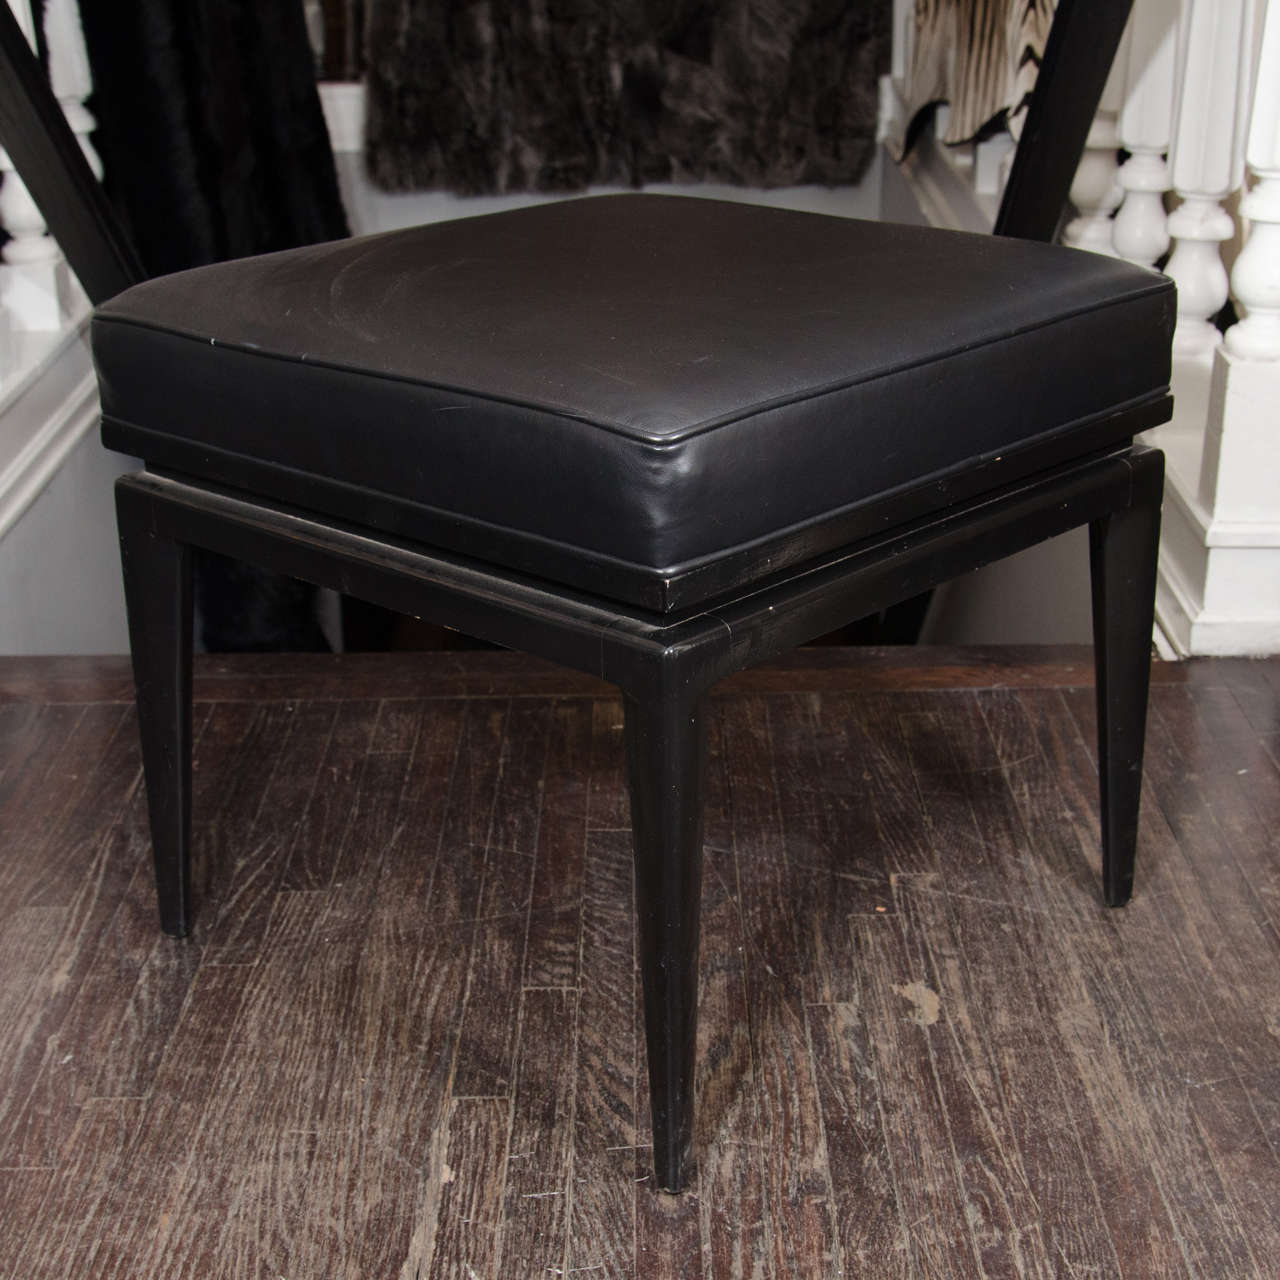 Italian 1950s Ebonized Bench With Black Leather Upholstery At 1stdibs